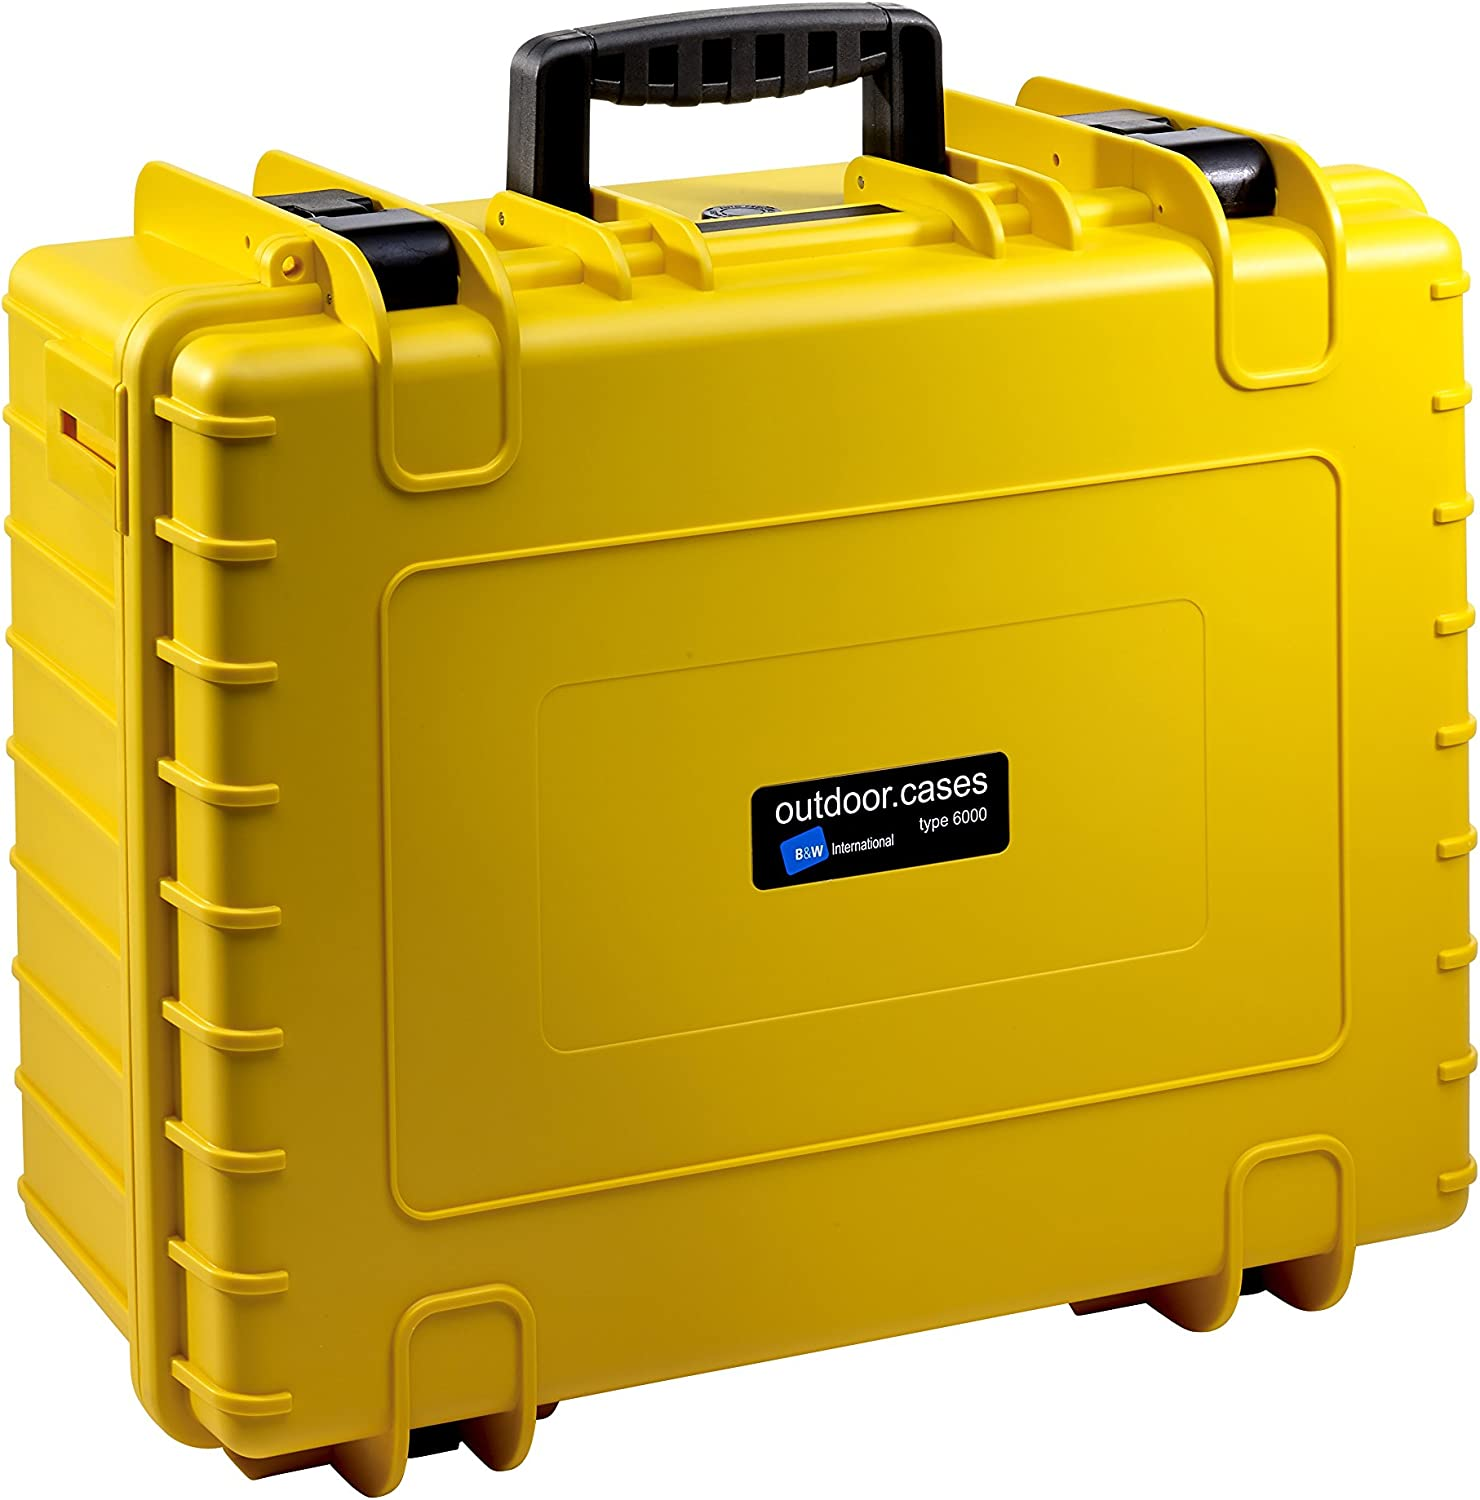 / The Original B /& W Outdoor Cases Type 6000/ Yellow Empty with Backpack Strap System/